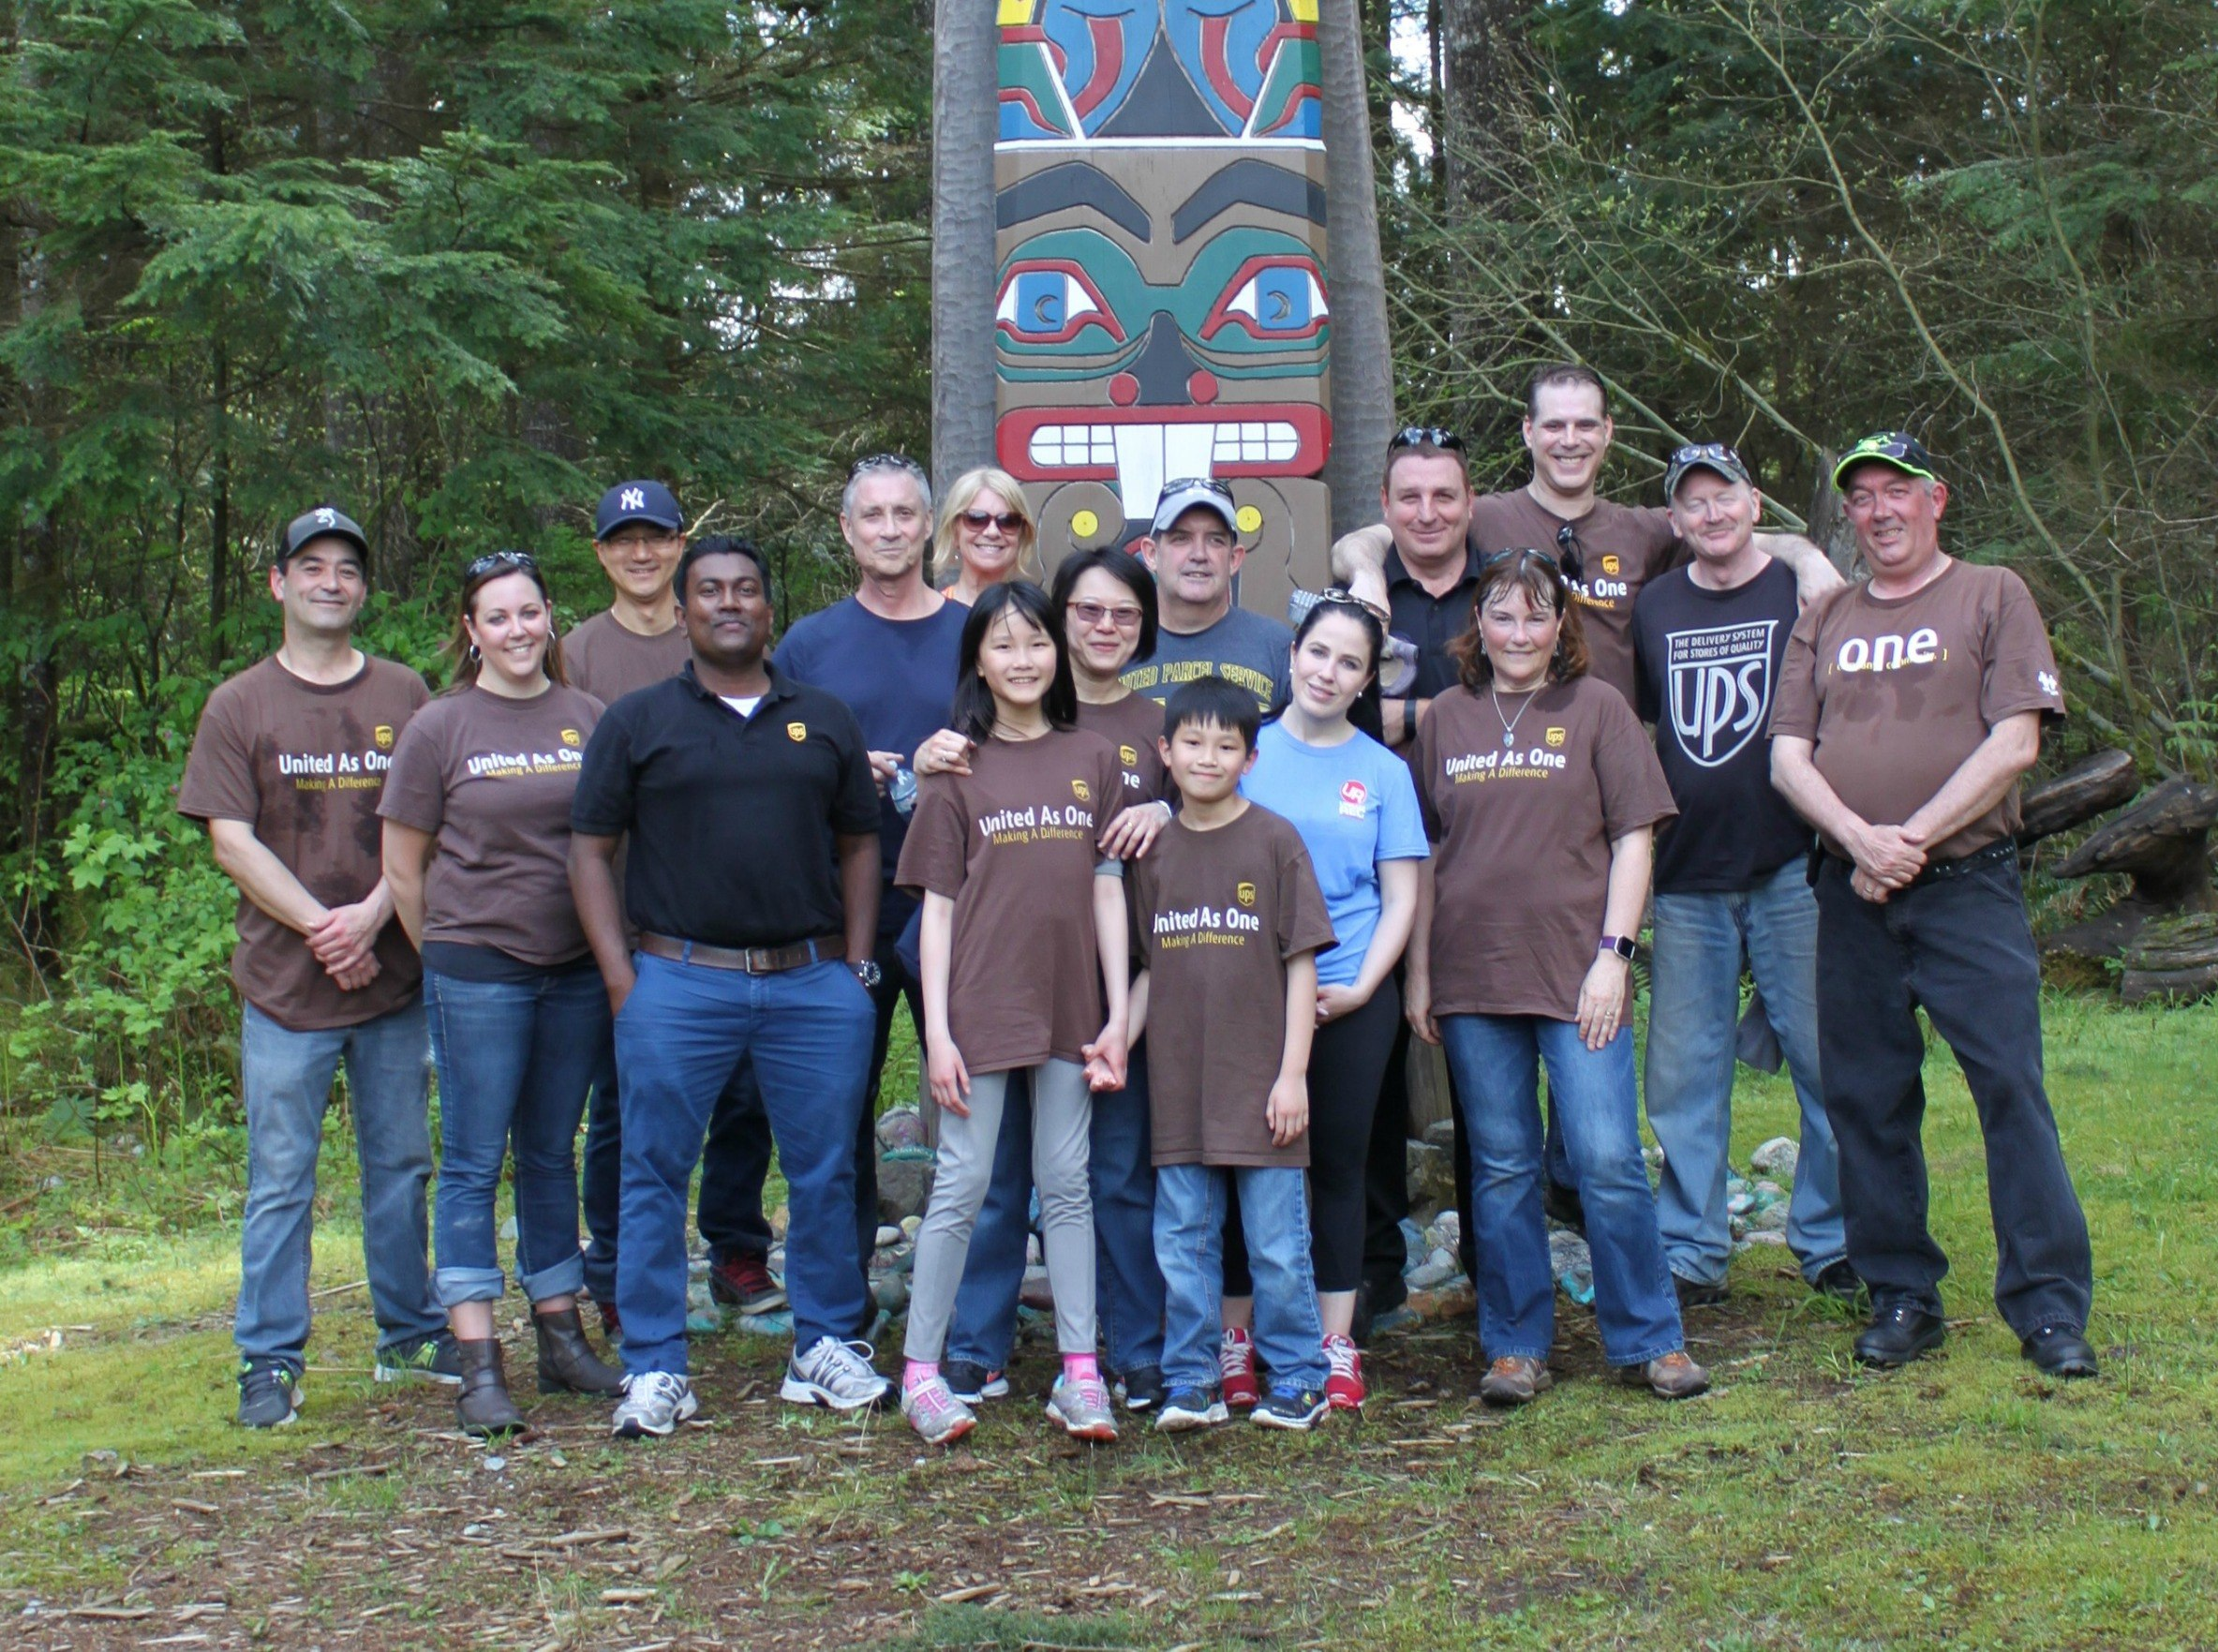 UPS Volunteer Group